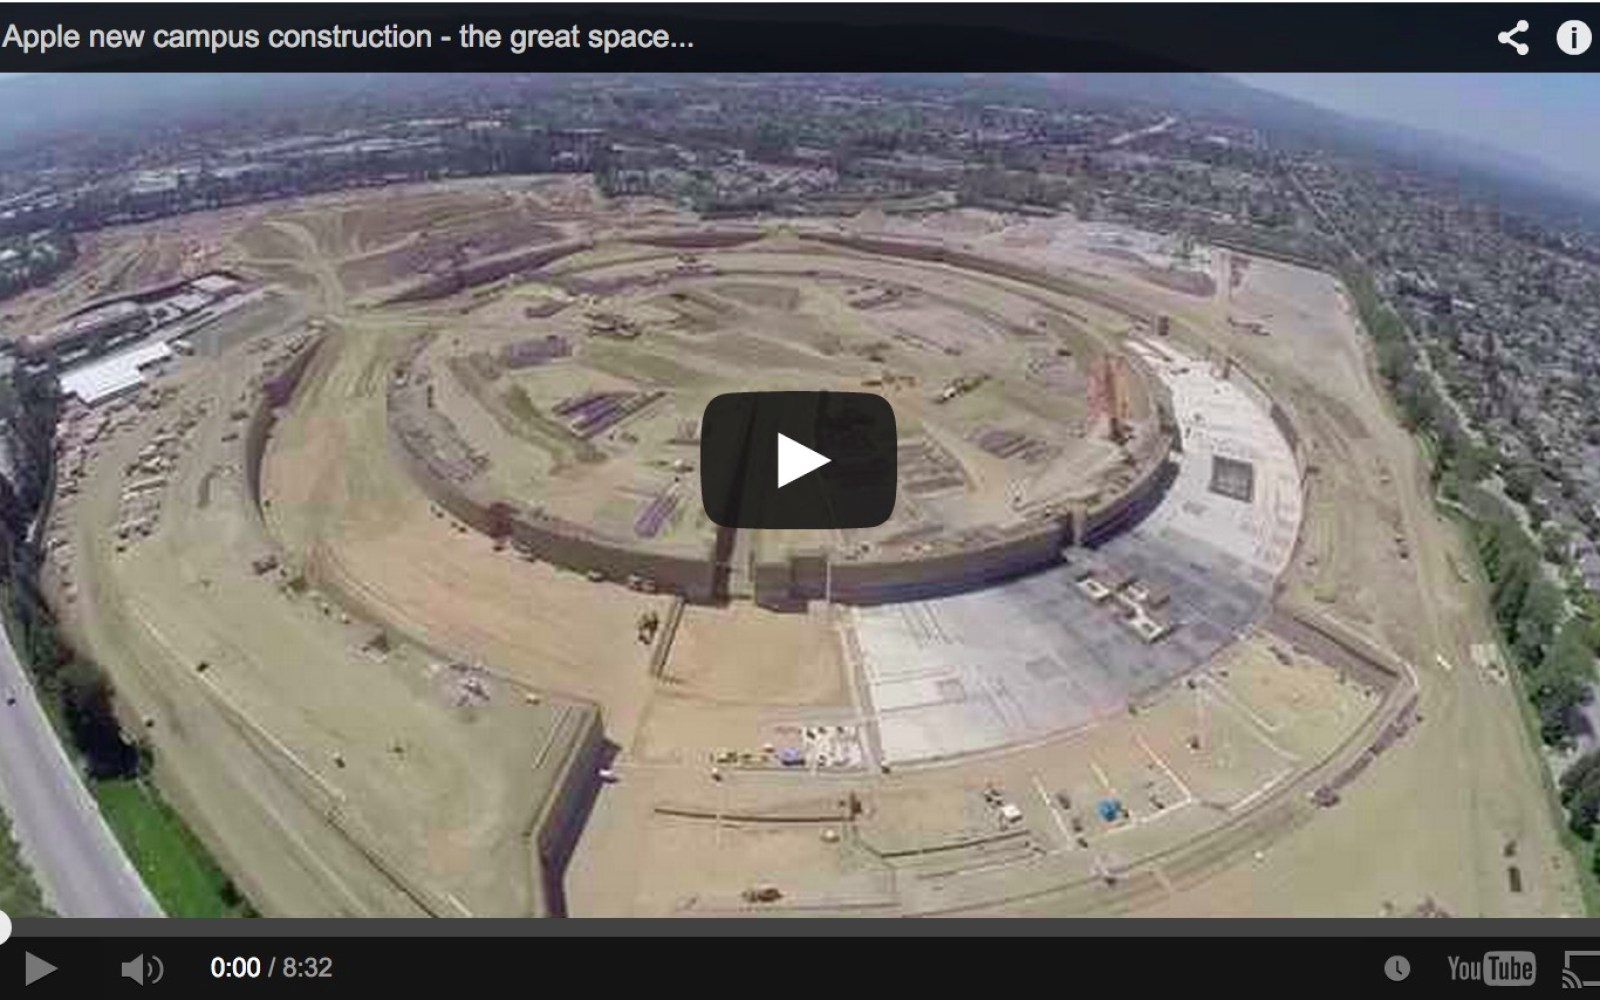 Apple 'spaceship' campus construction caught on film by flying drone